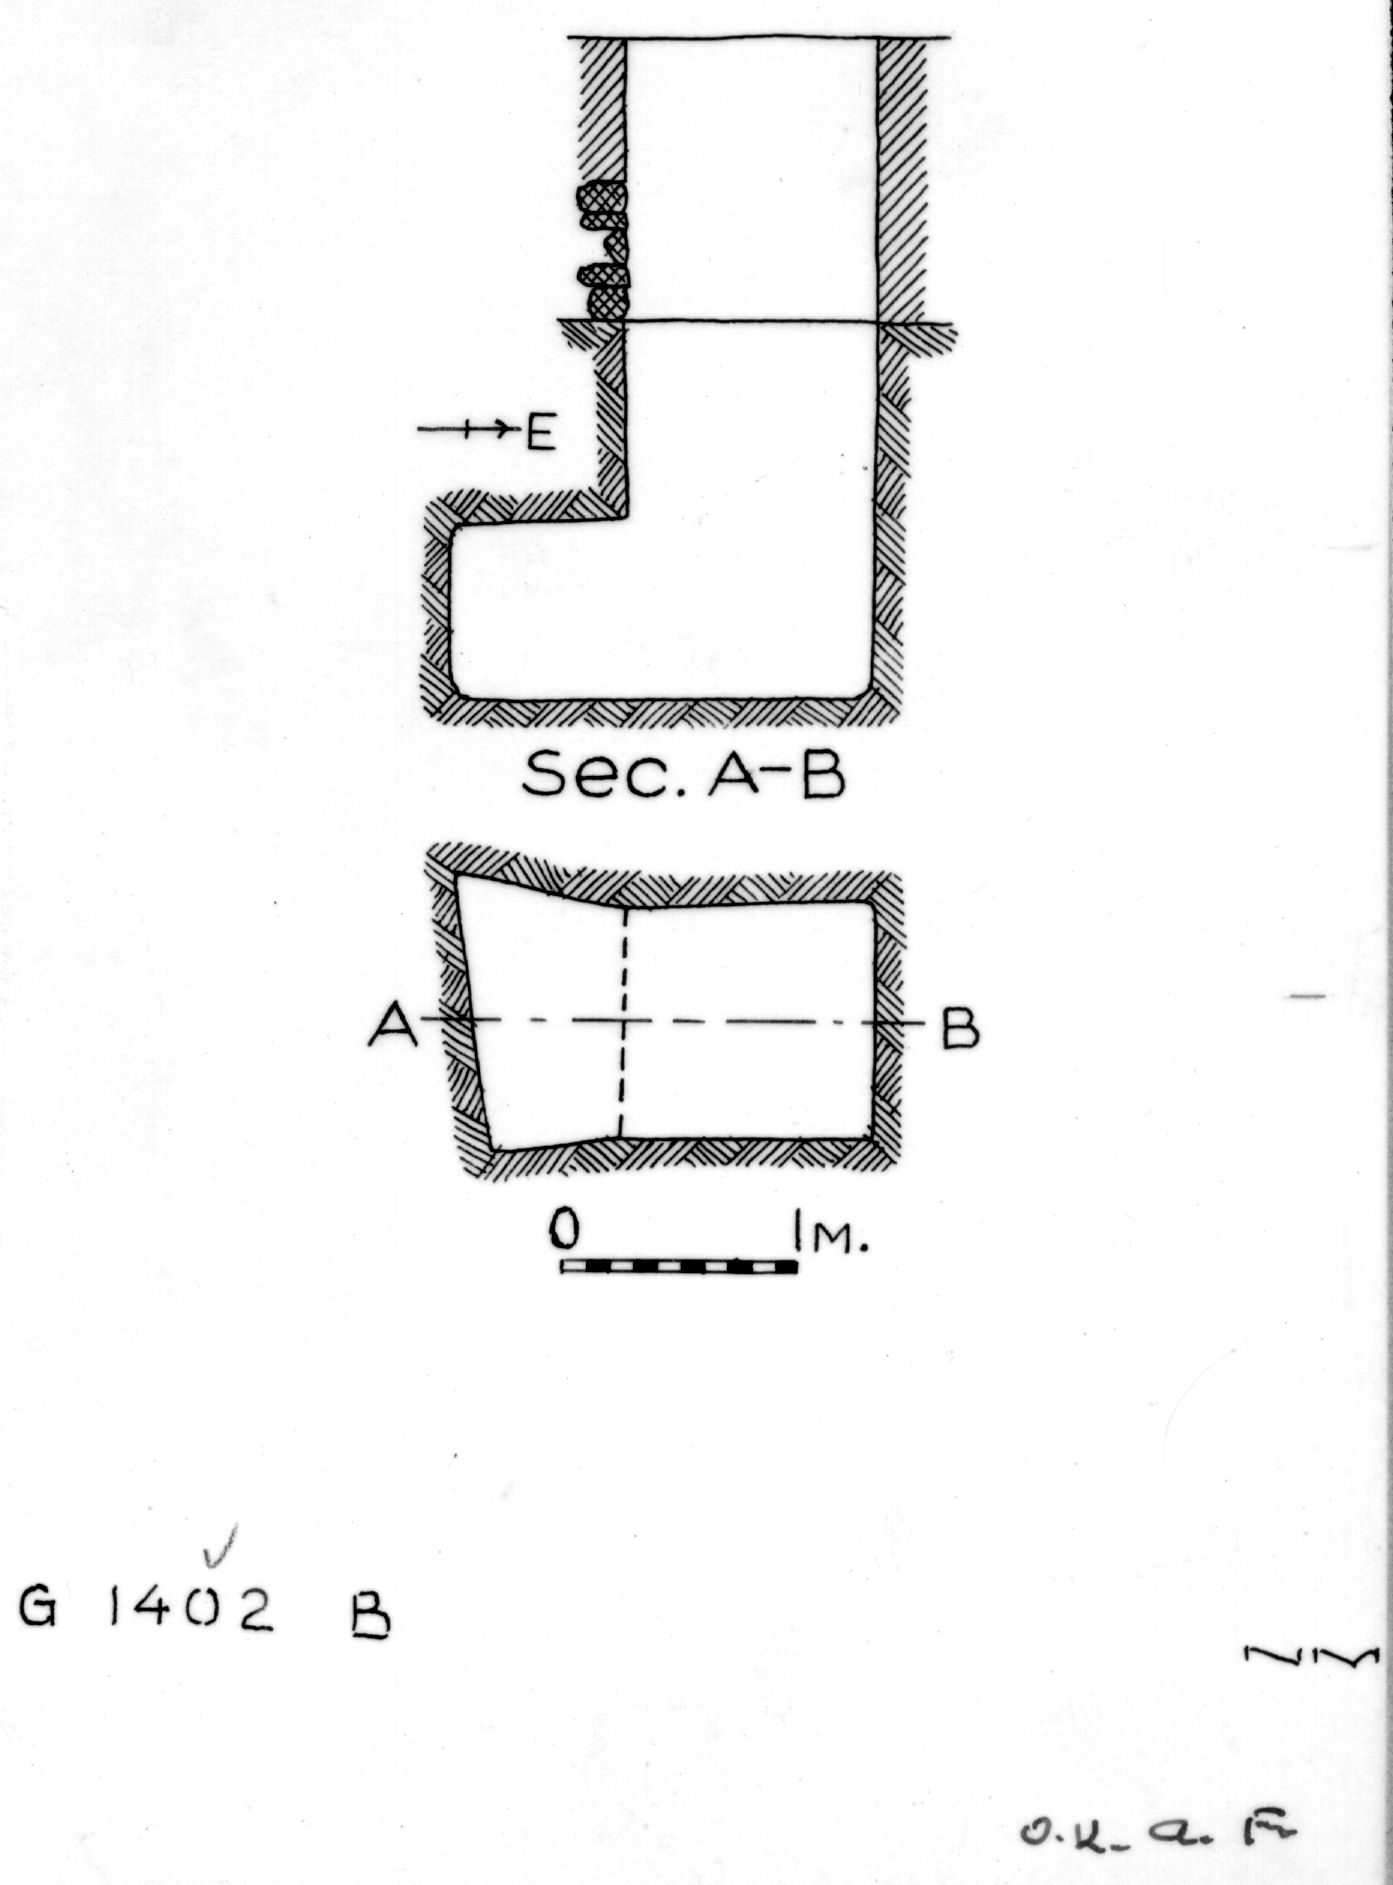 Maps and plans: G 1402, Shaft B